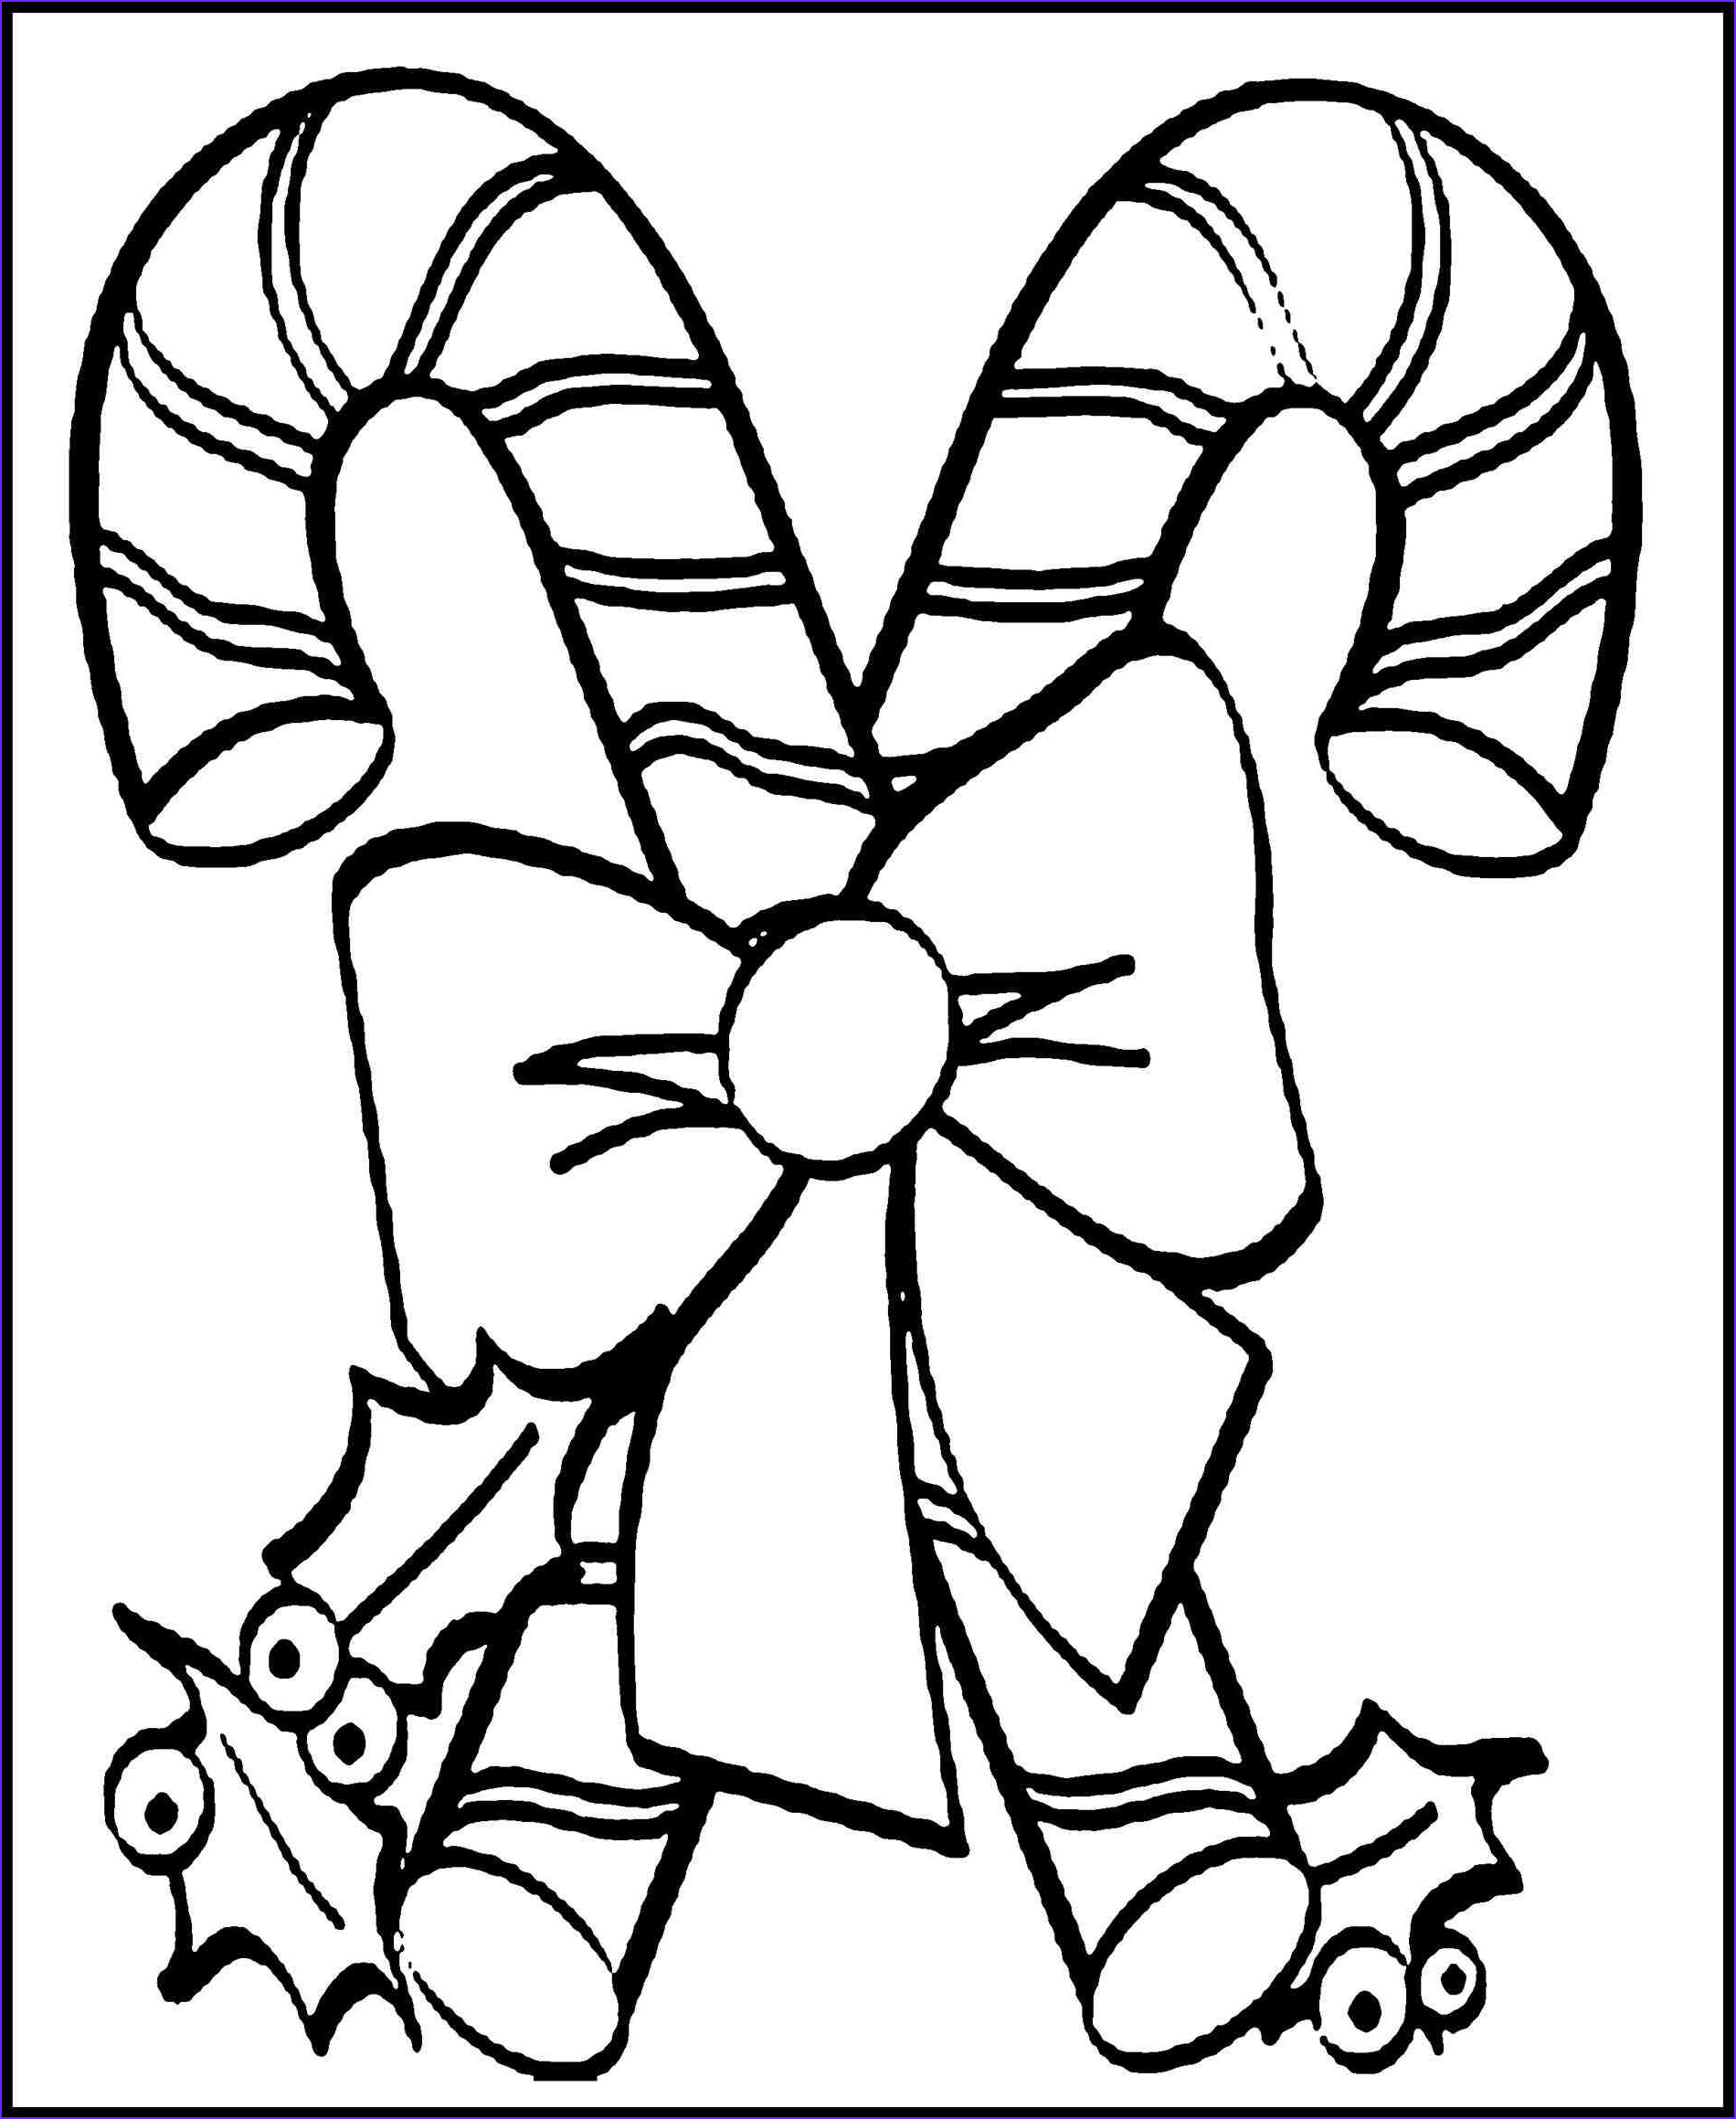 Turn Photos Into Coloring Pages Free Awesome Gallery Turn Your S Into Coloring Pages at Getcolorings